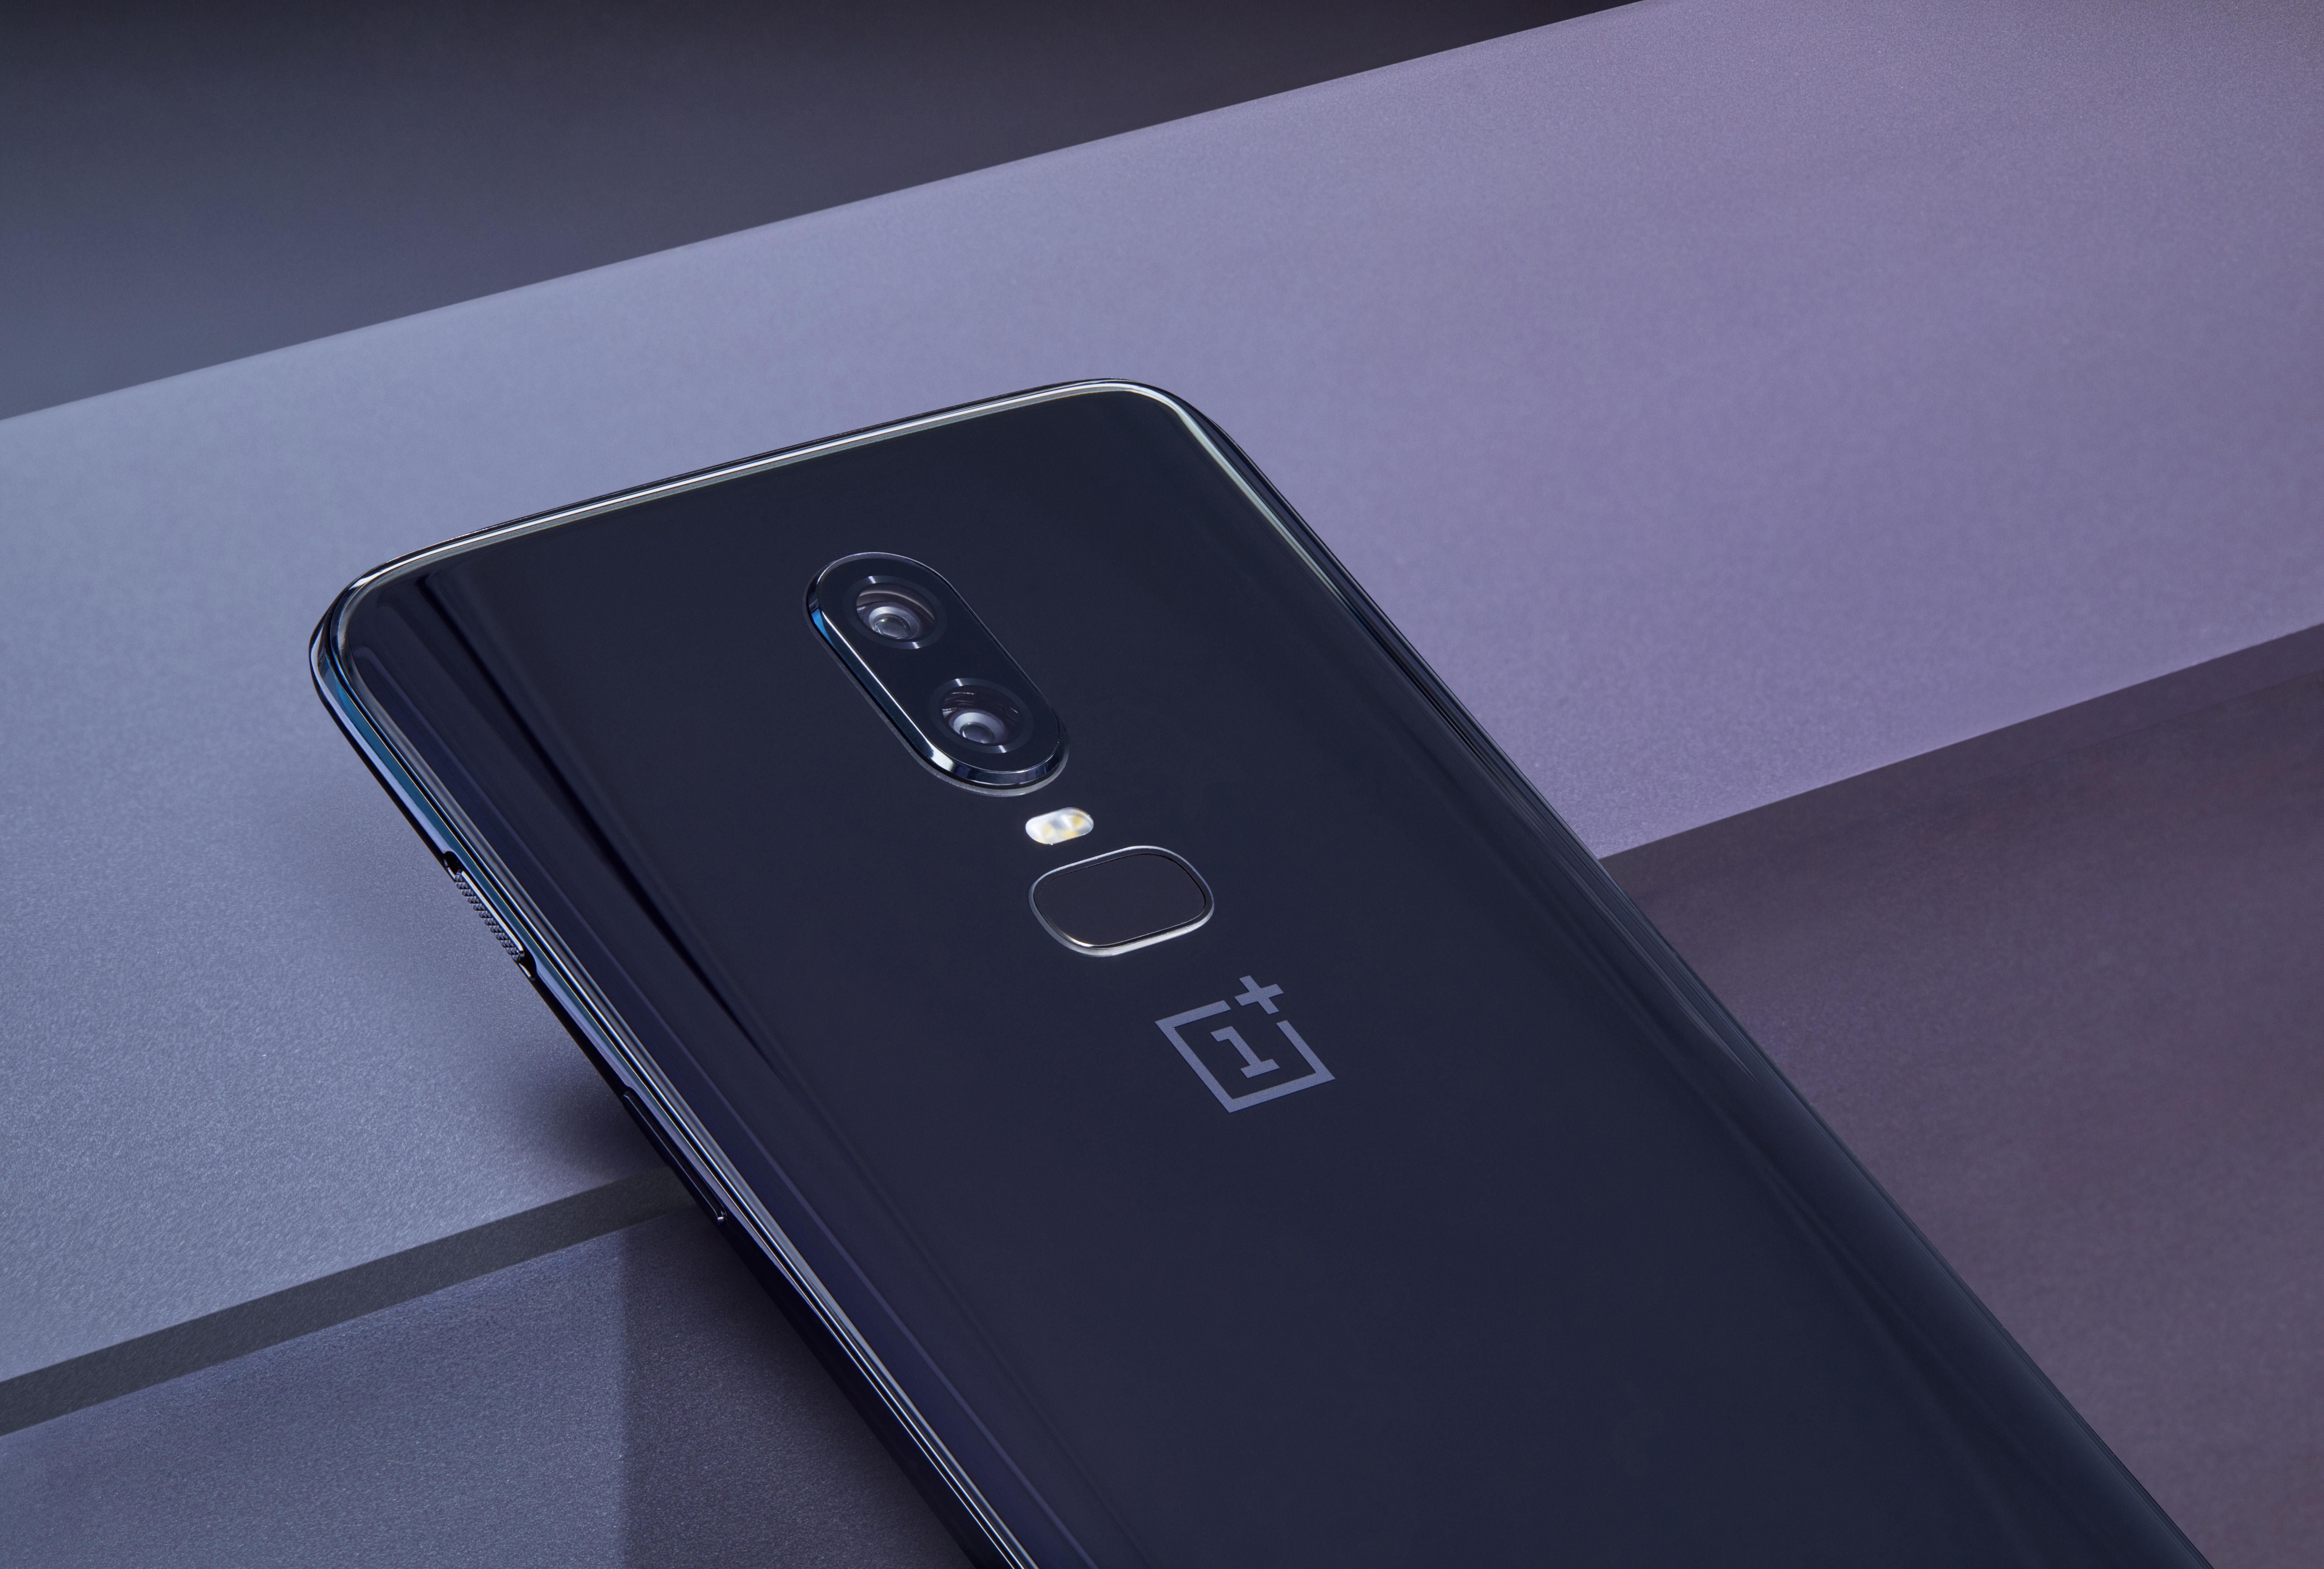 OnePlus 6 sets a new record with INR 100 Crores sales in 10 mins